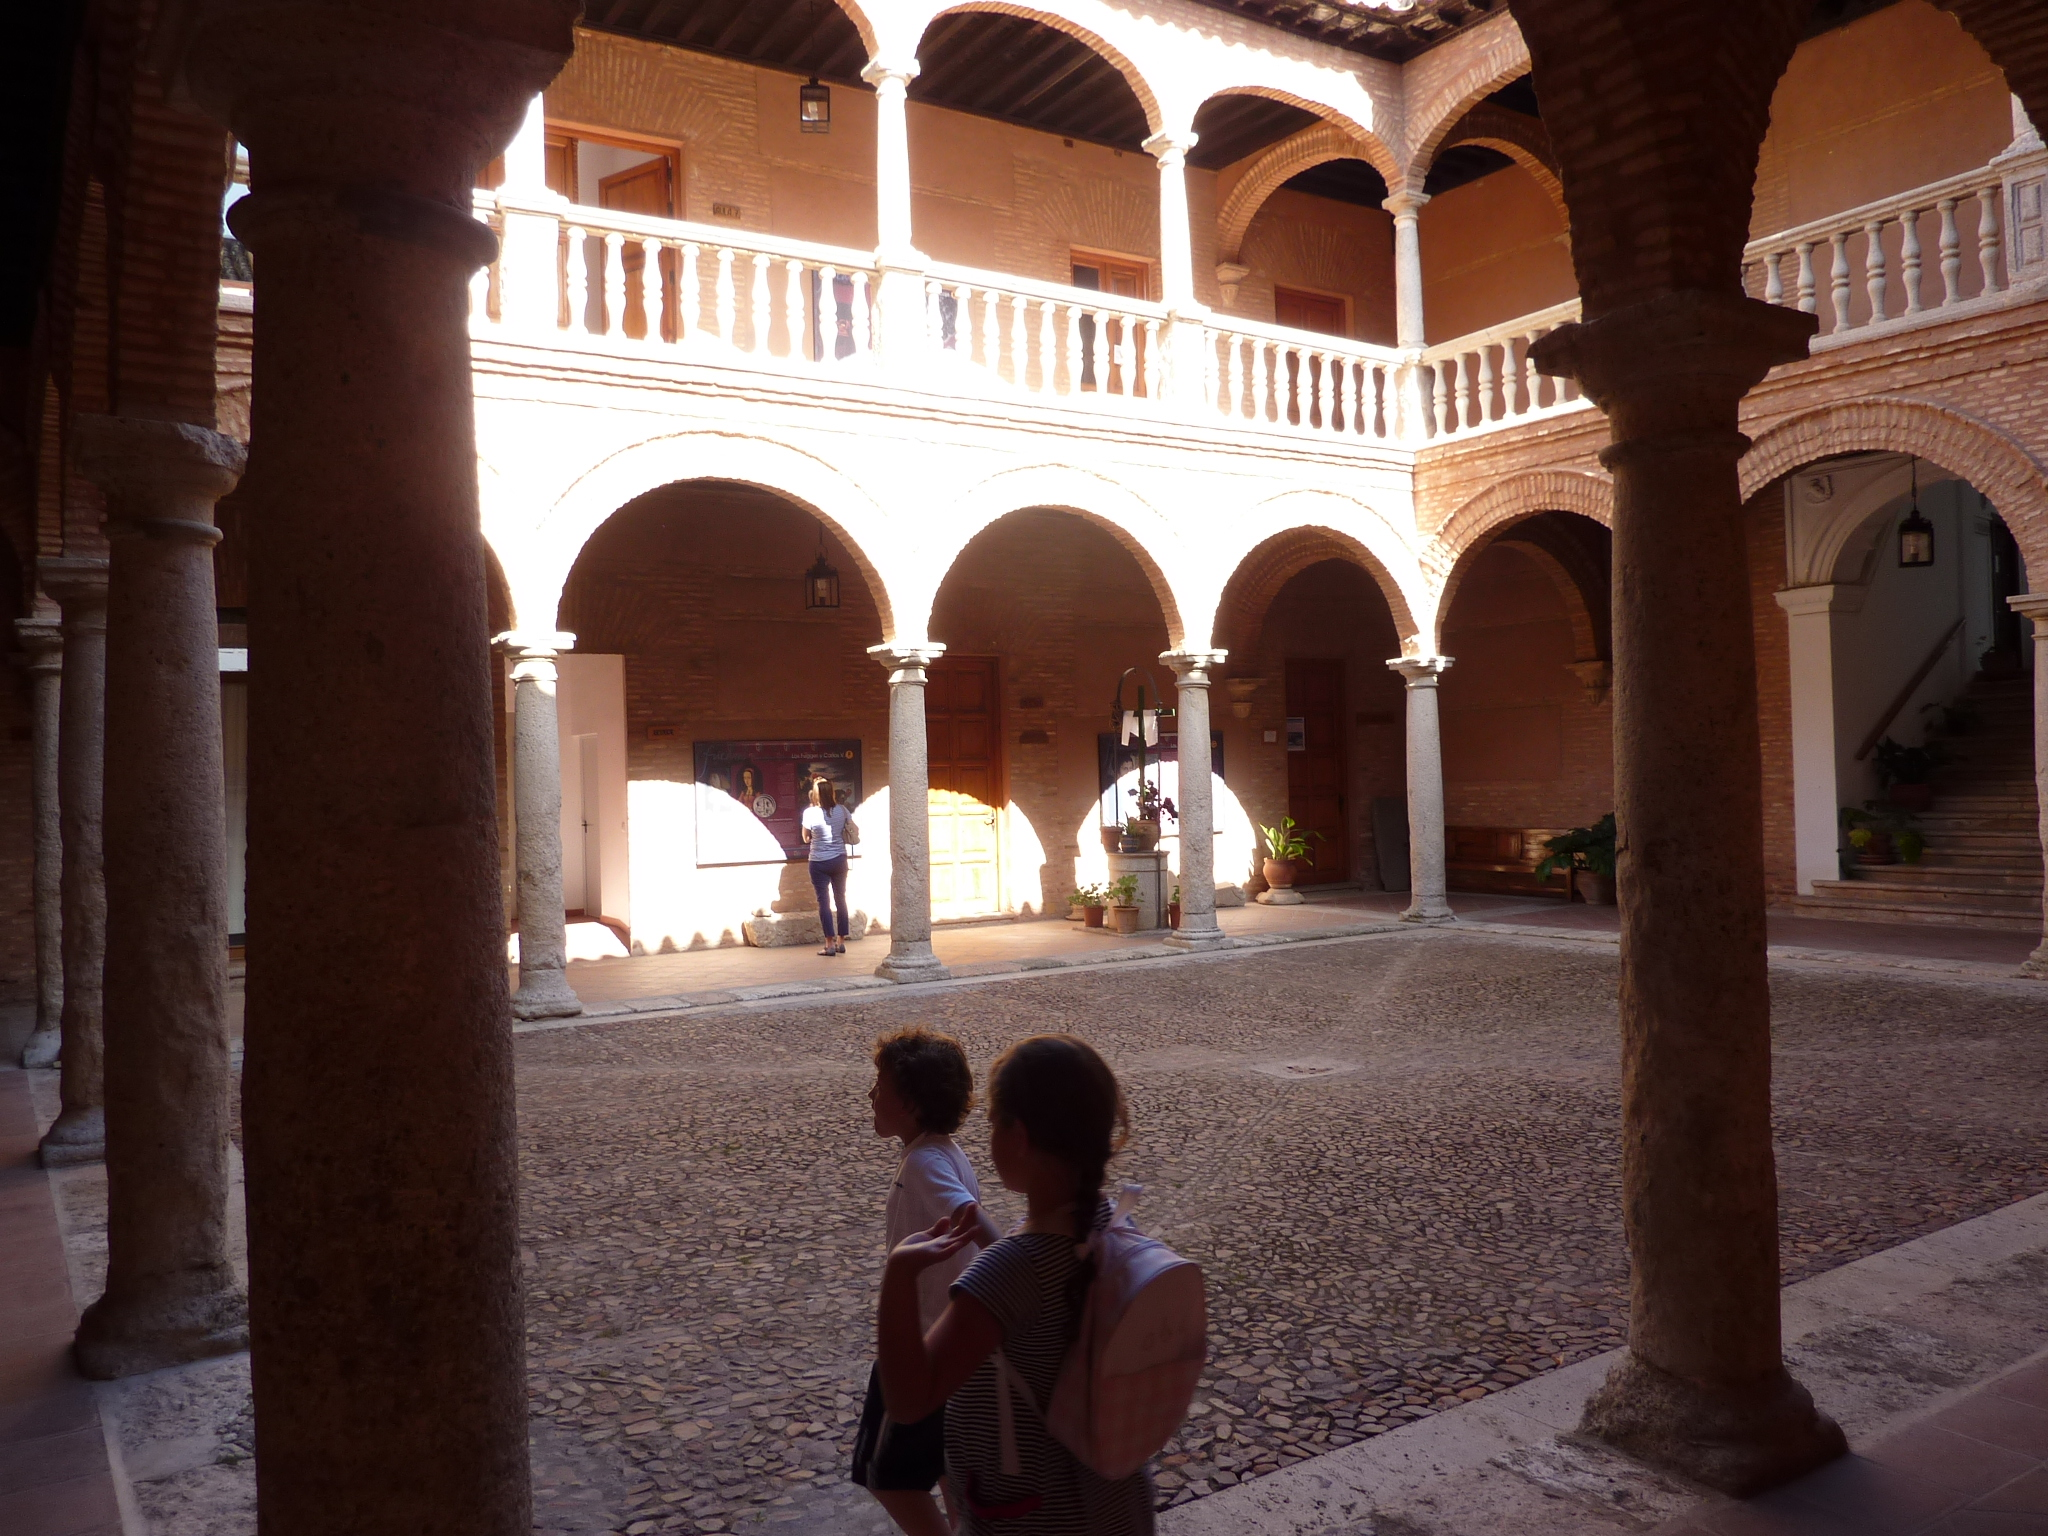 The courtyard of Fugger warehouse in Almagro, Spain